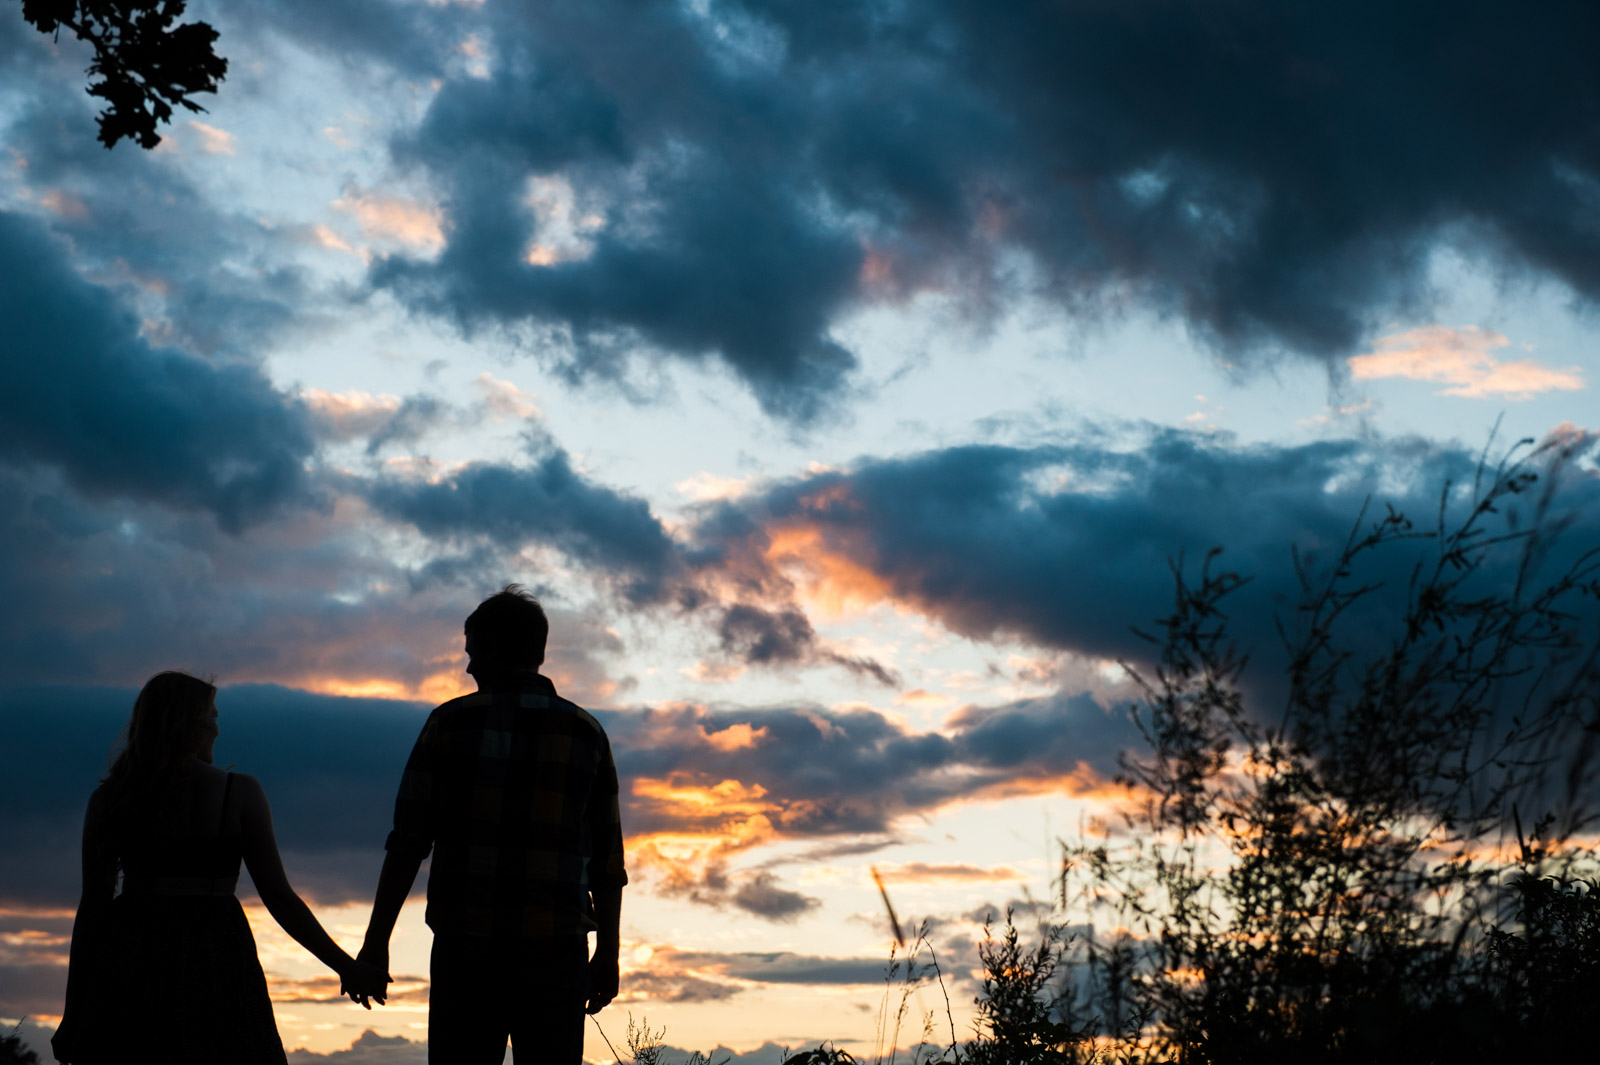 Engagement Session couple holding hands in silhouette at sunset